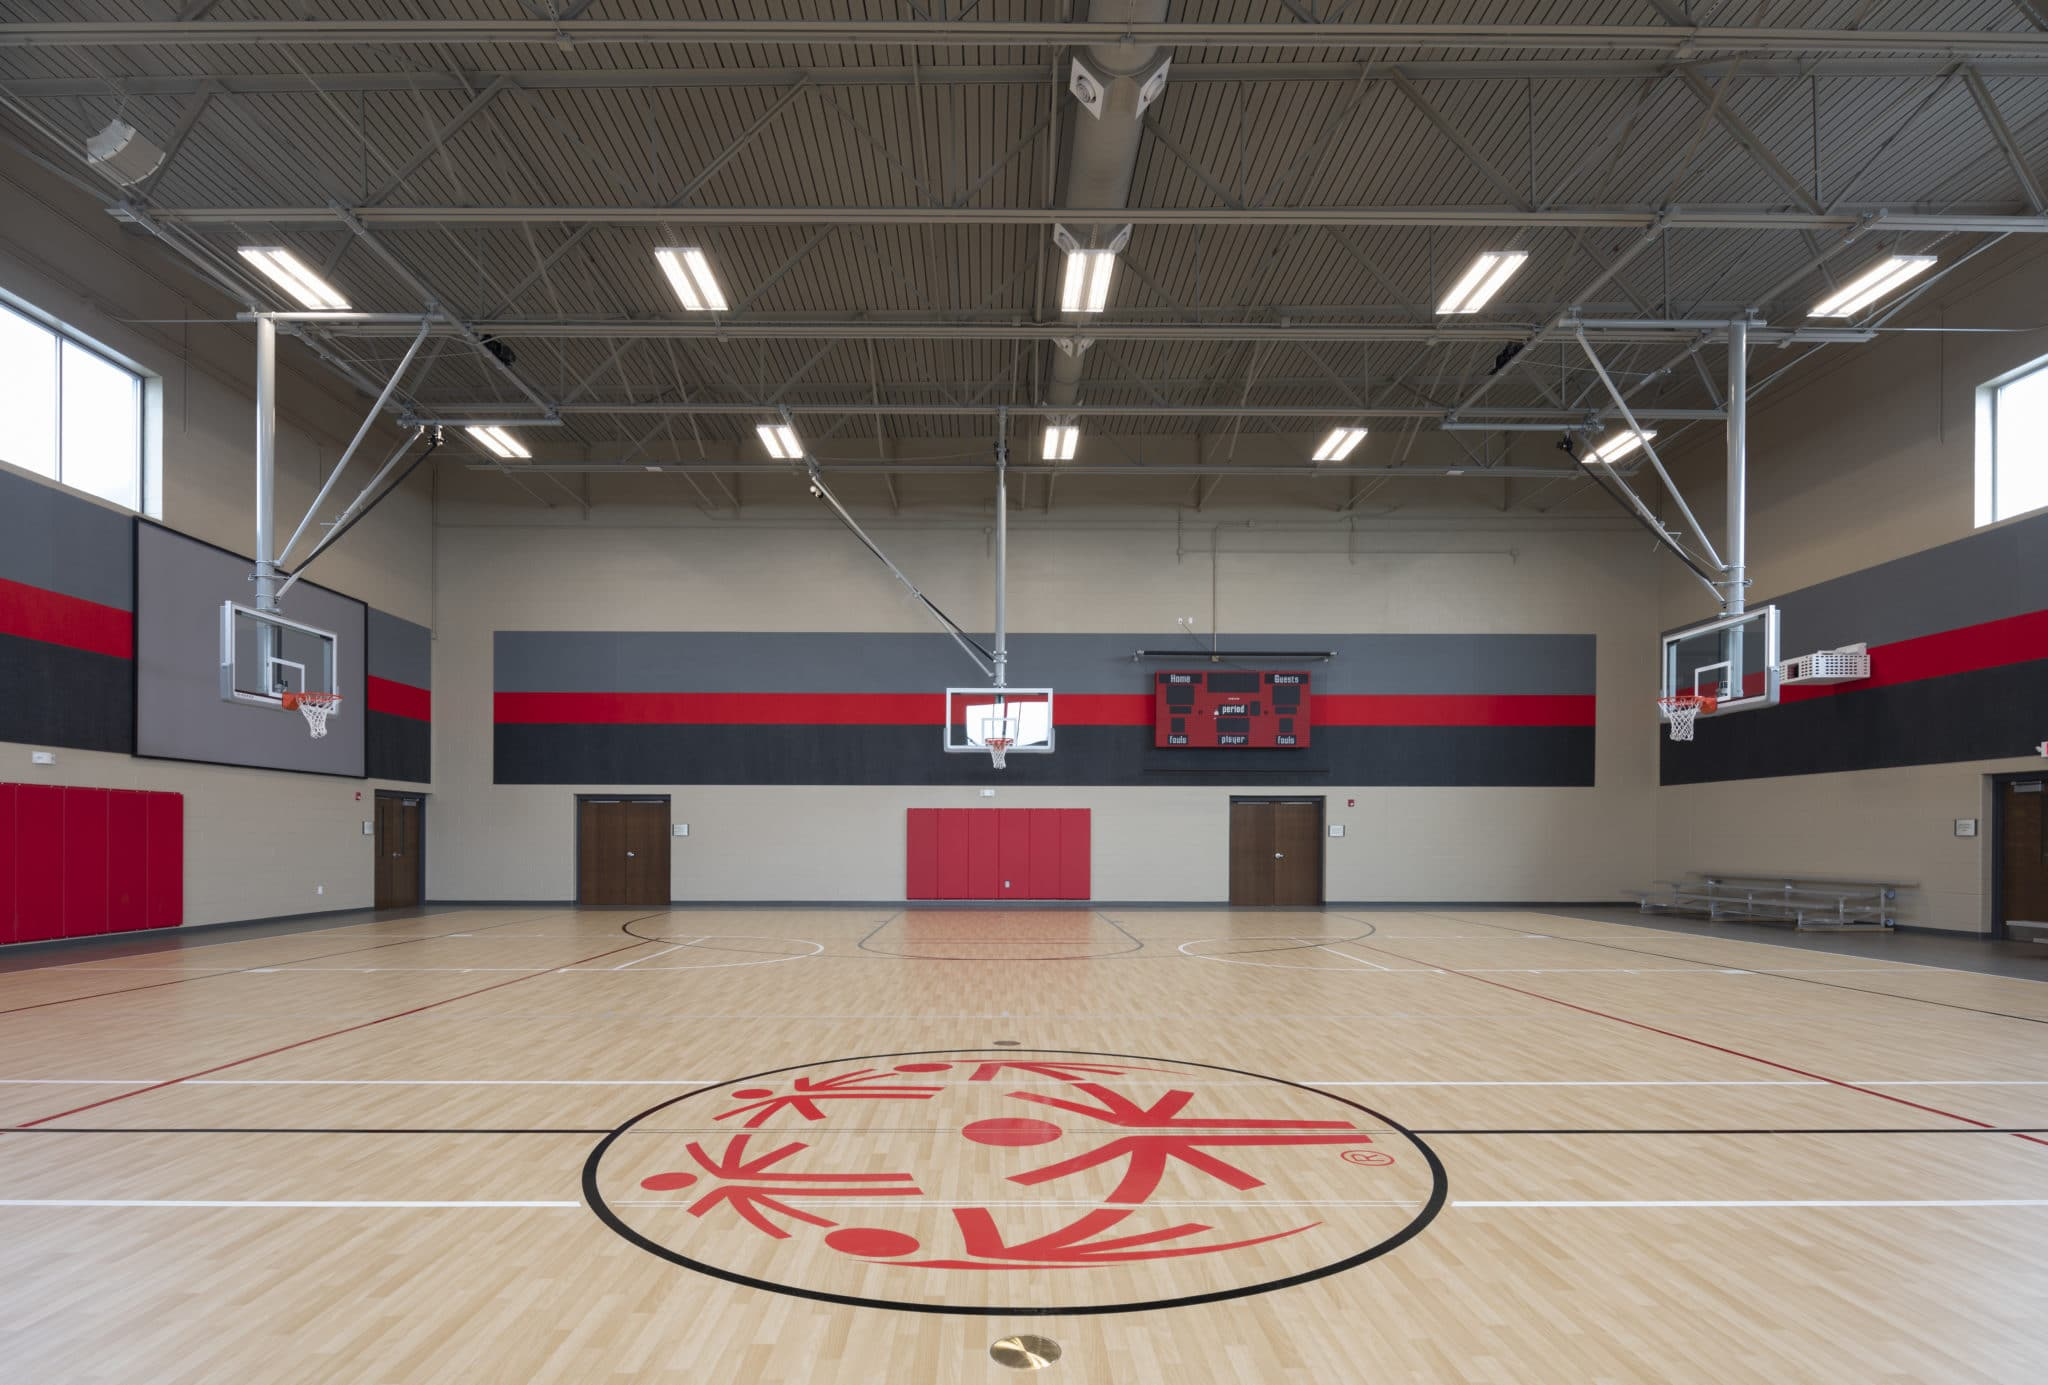 A gymnasium with three basketball hoops, a scoreboard, and a SOMO logo at center court